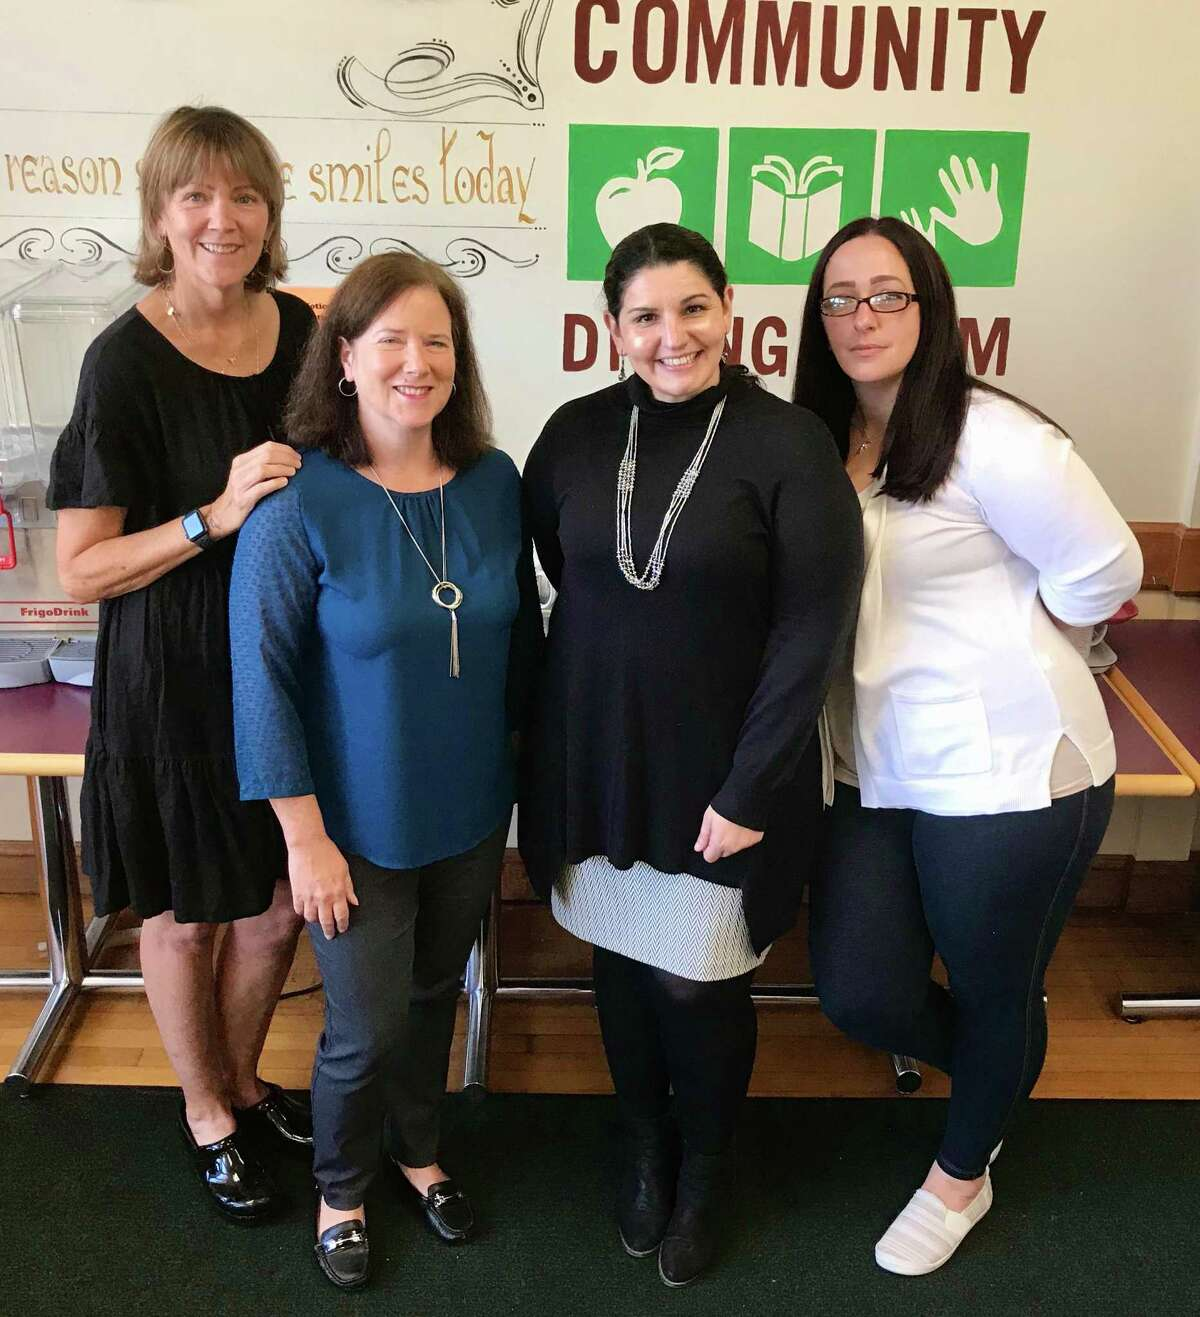 CDR kitchen coordinator Mary Johnston, volunteer coordinator Marie Mordarski, executive director Judy Barron, and administrative assistant Diana Vaicunas on a recent morning at the Community Dining Room.